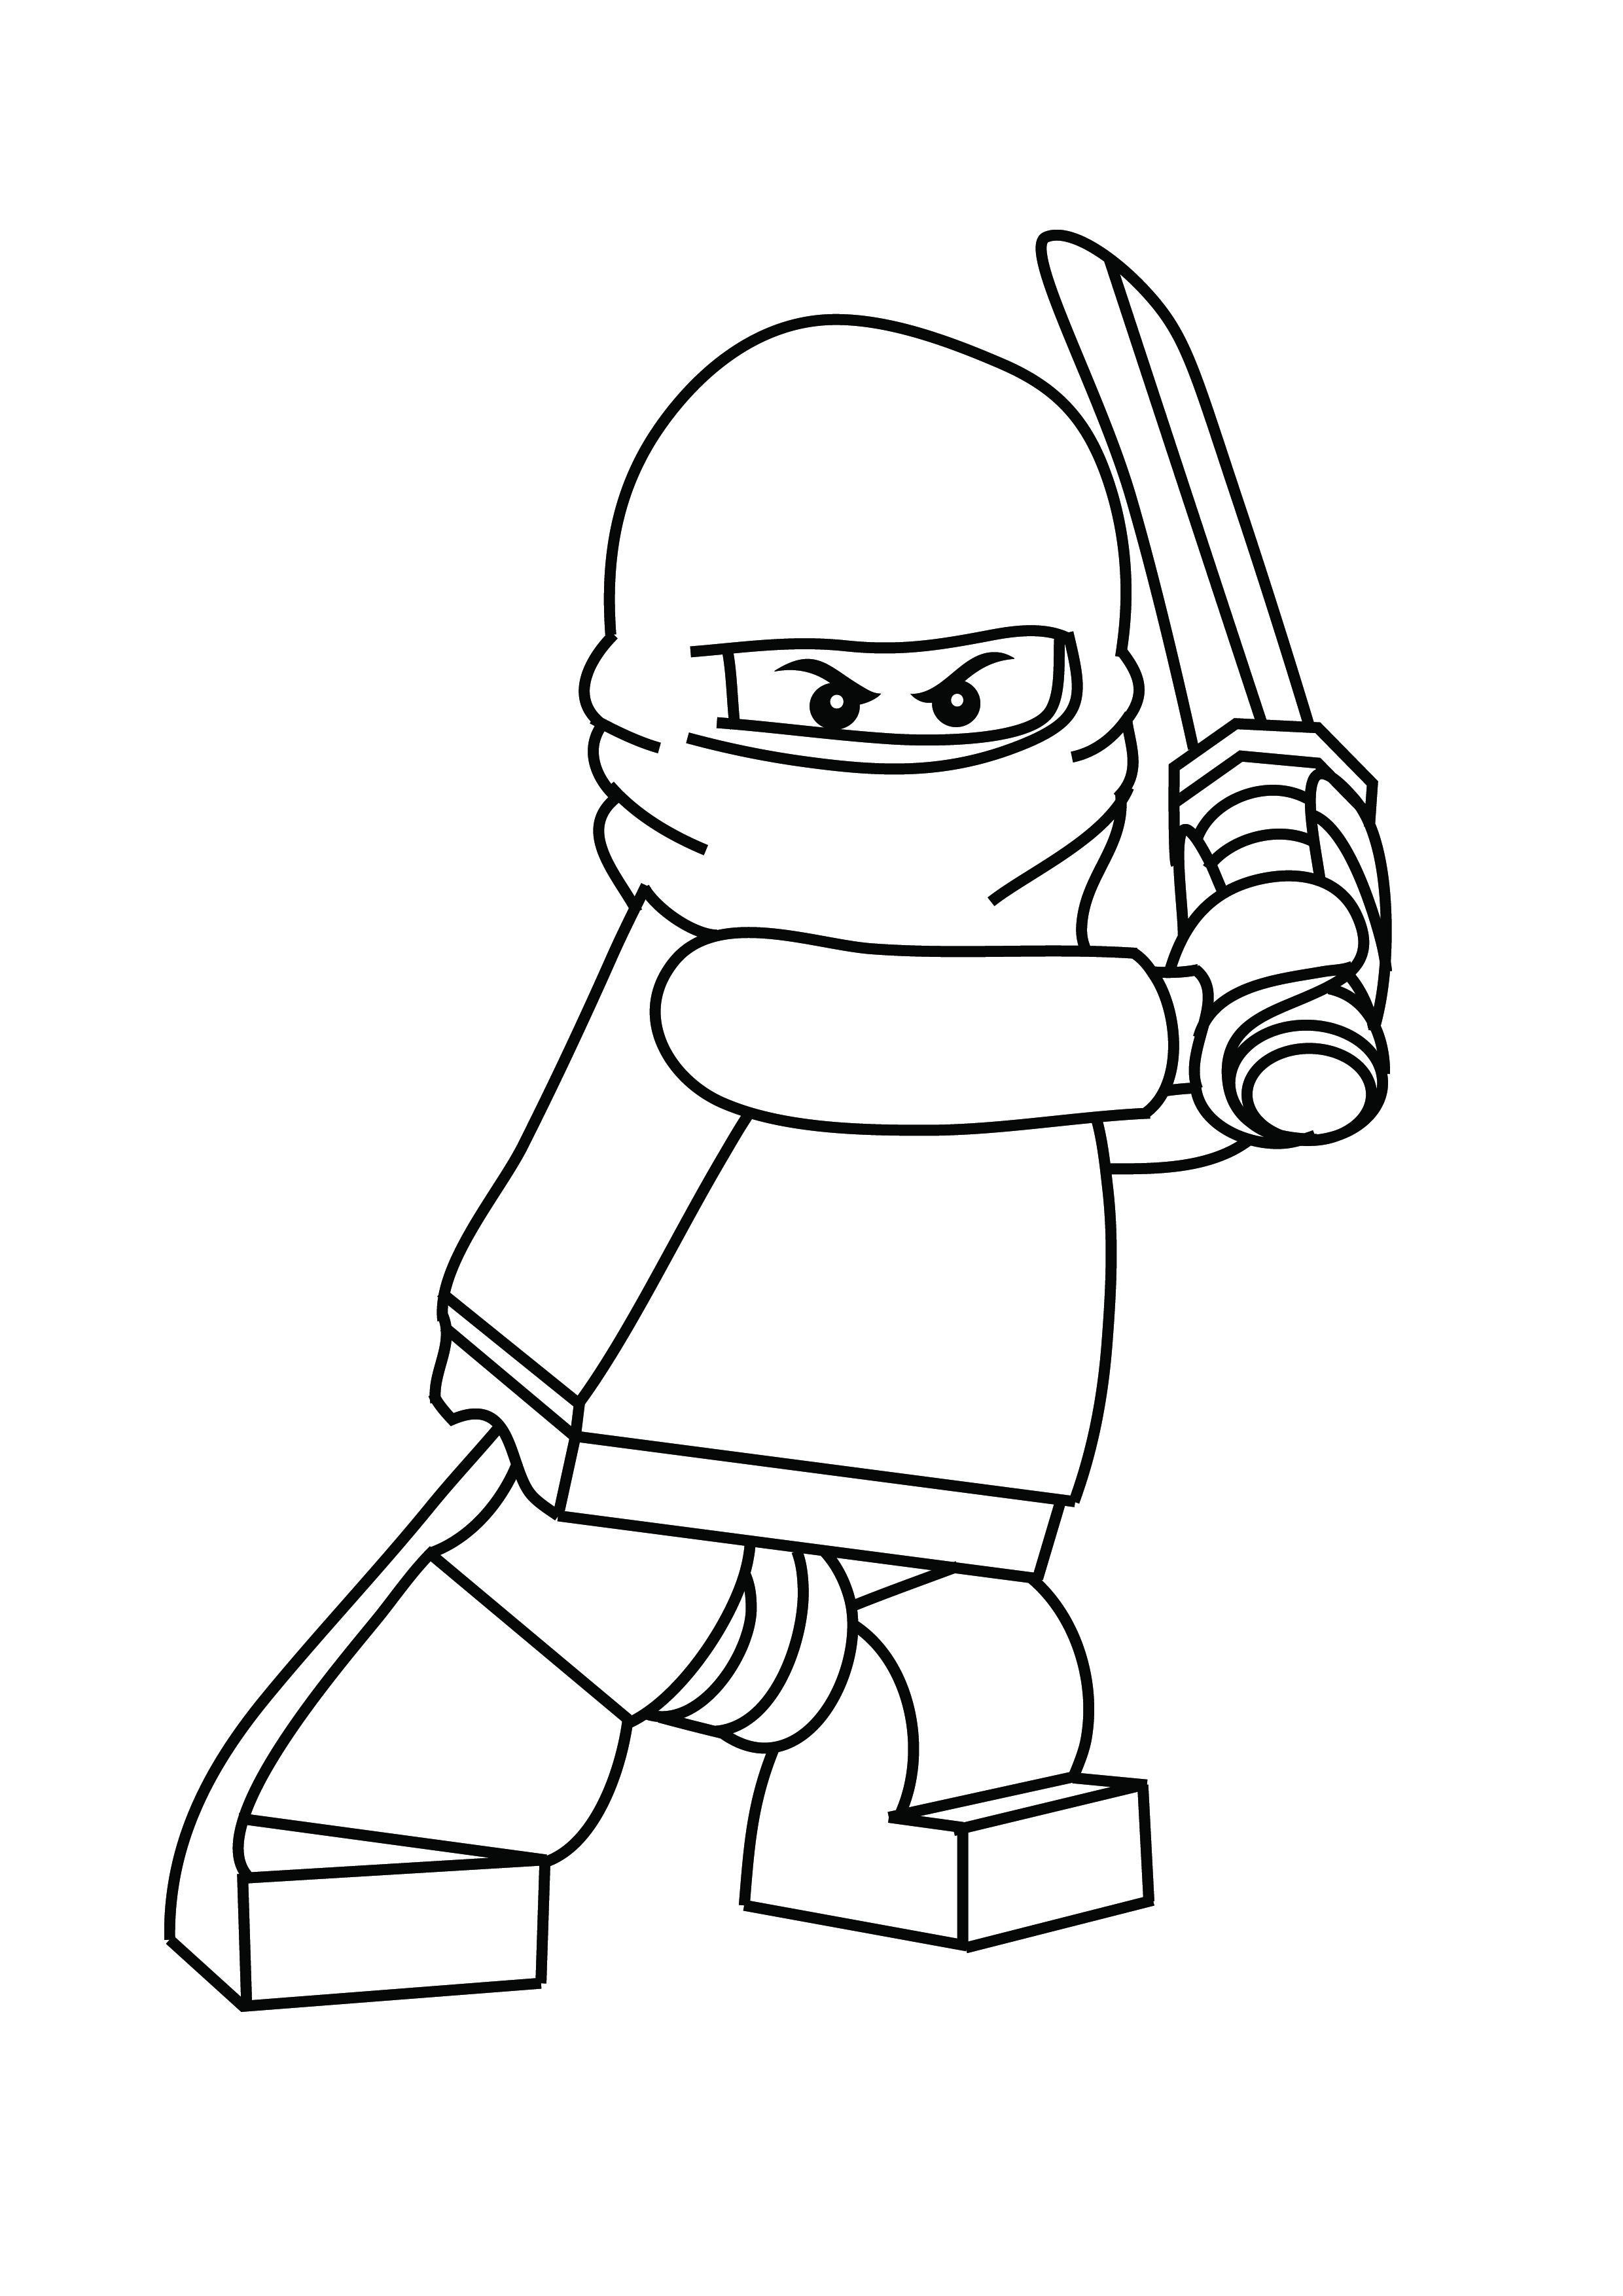 lego drawings to colour lego iron man drawing at getdrawings free download lego colour to drawings